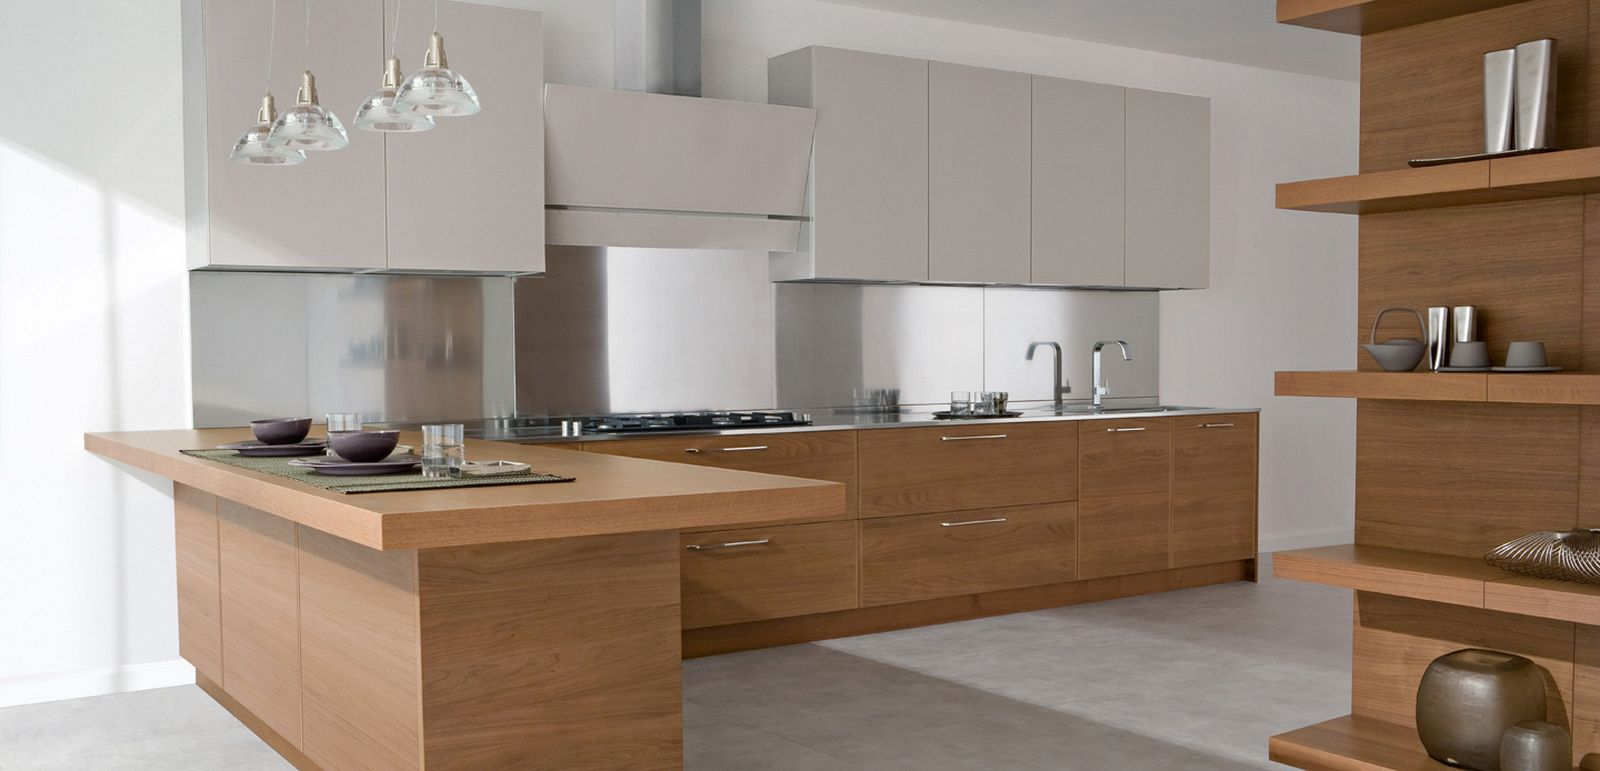 Charmant Modern Kitchens In Wooden Finish